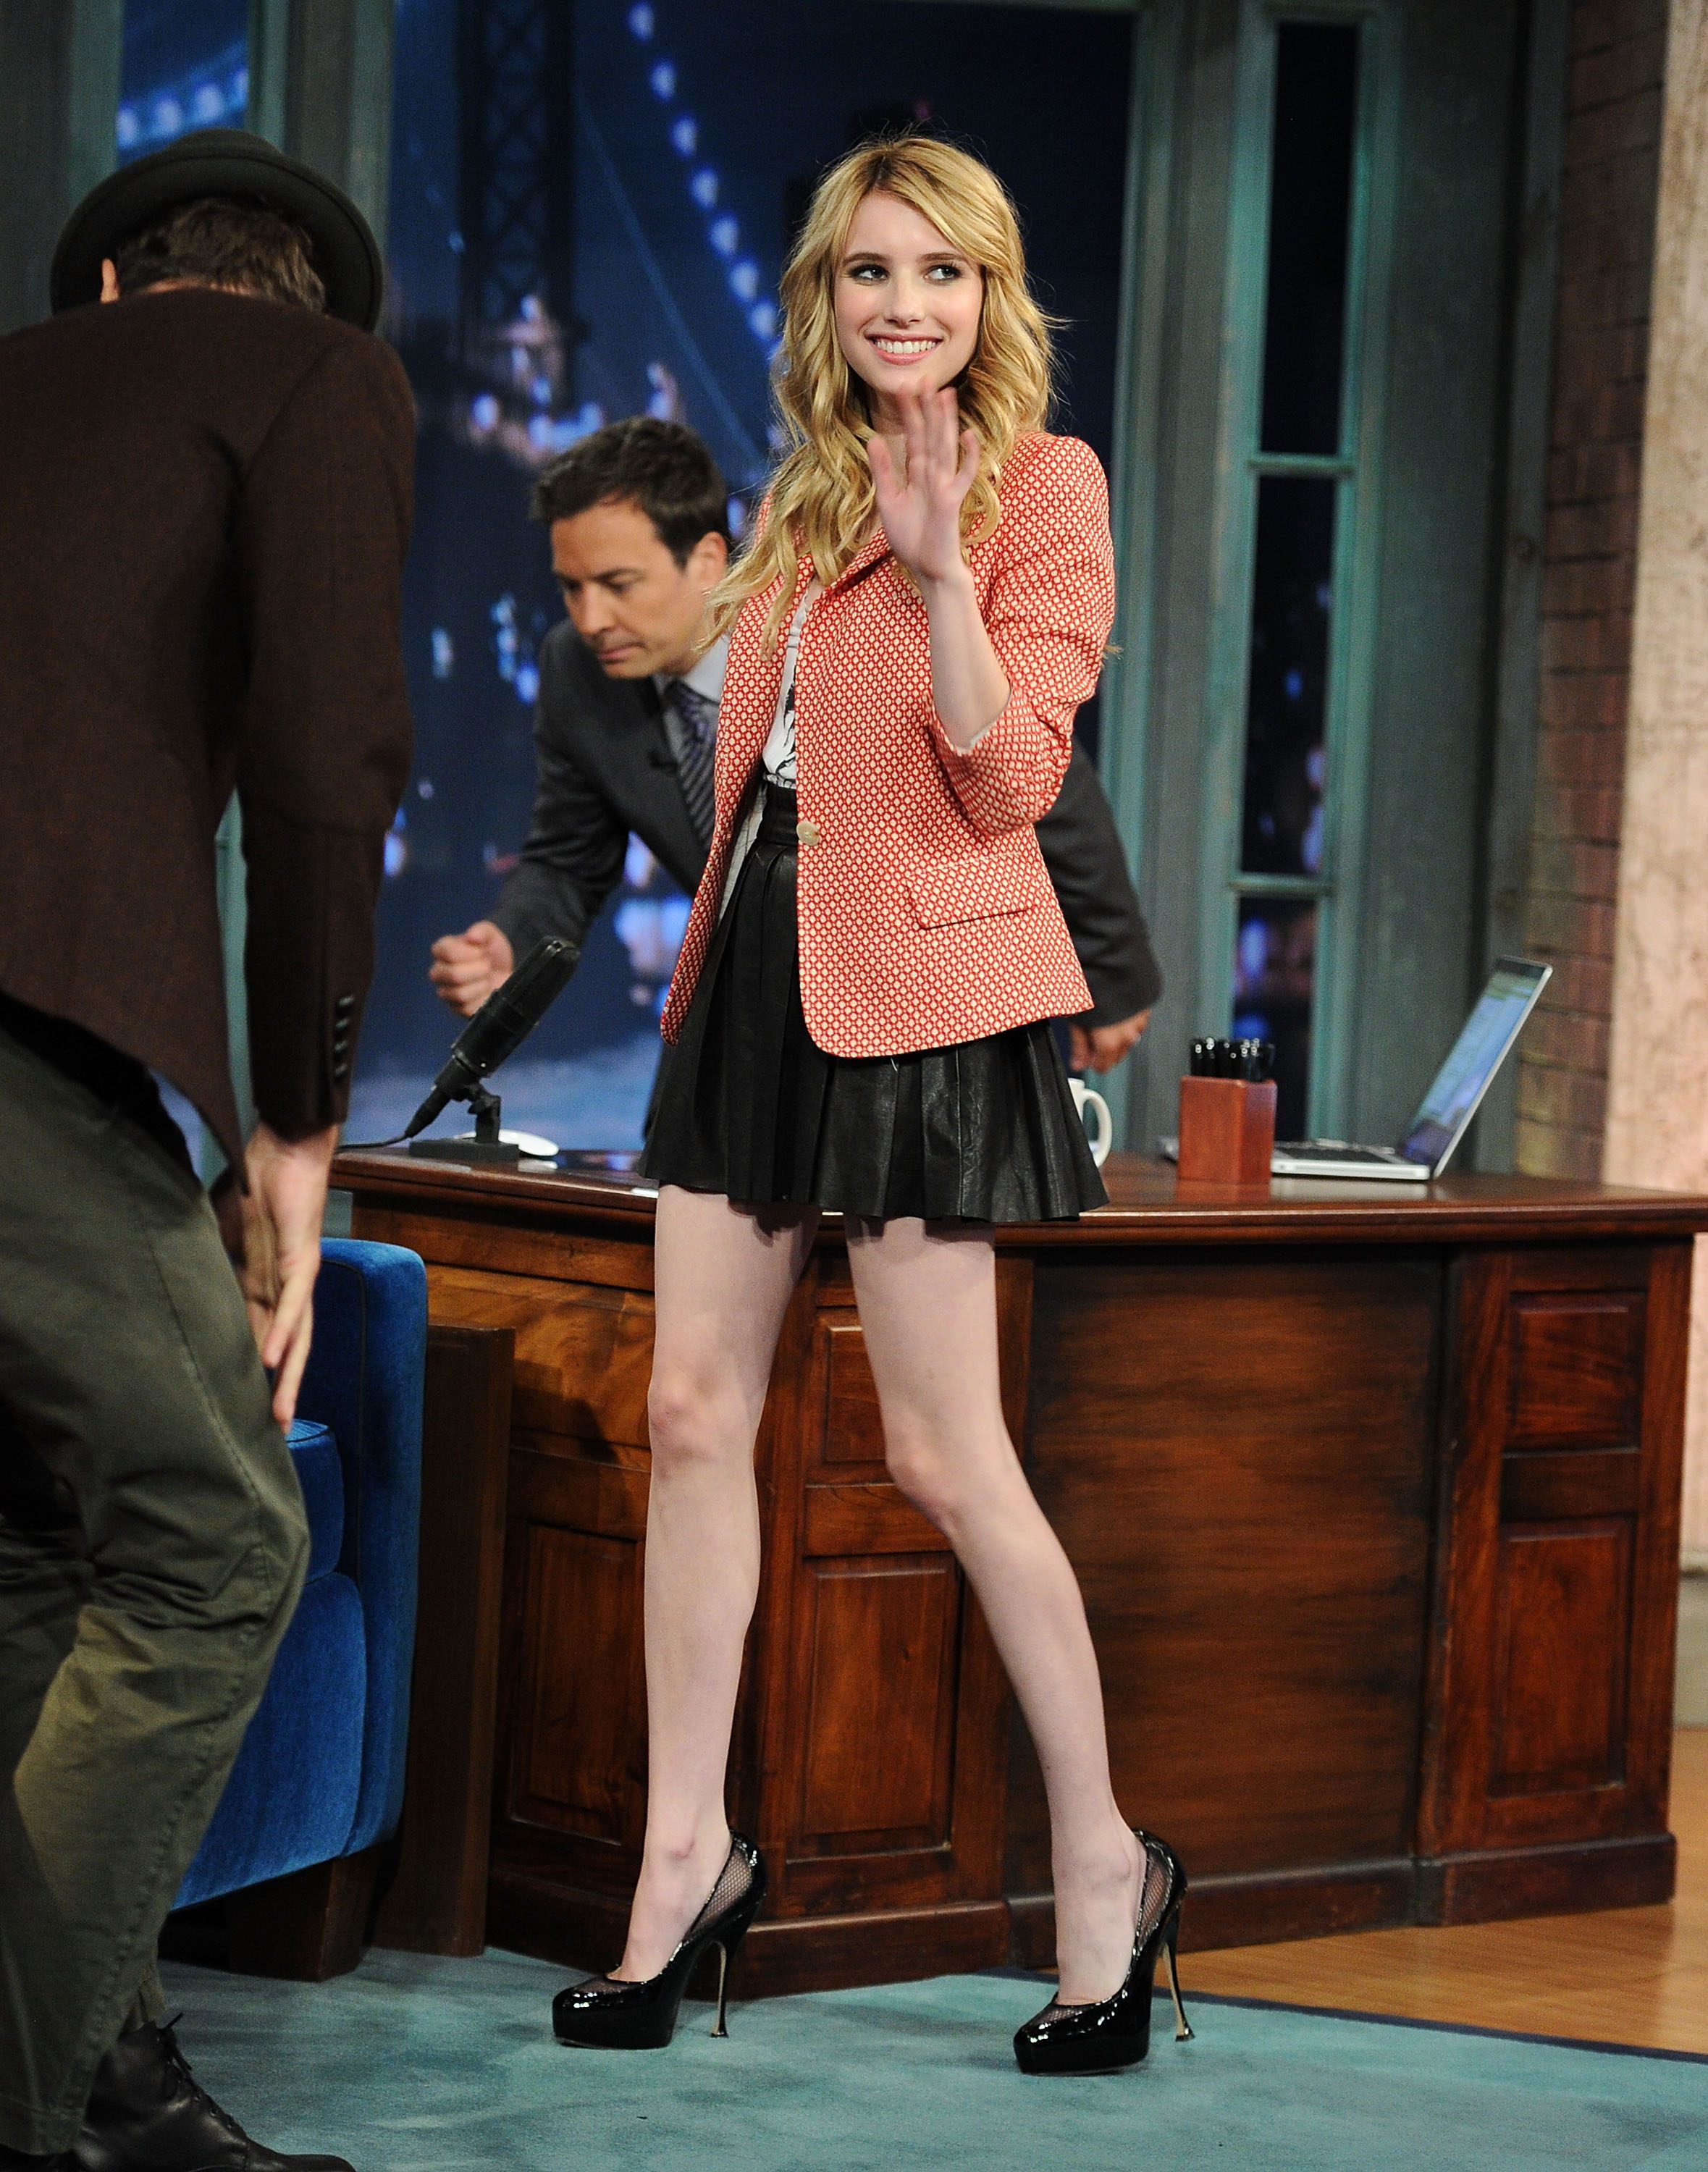 emma roberts miniskirts HD Wallpaper